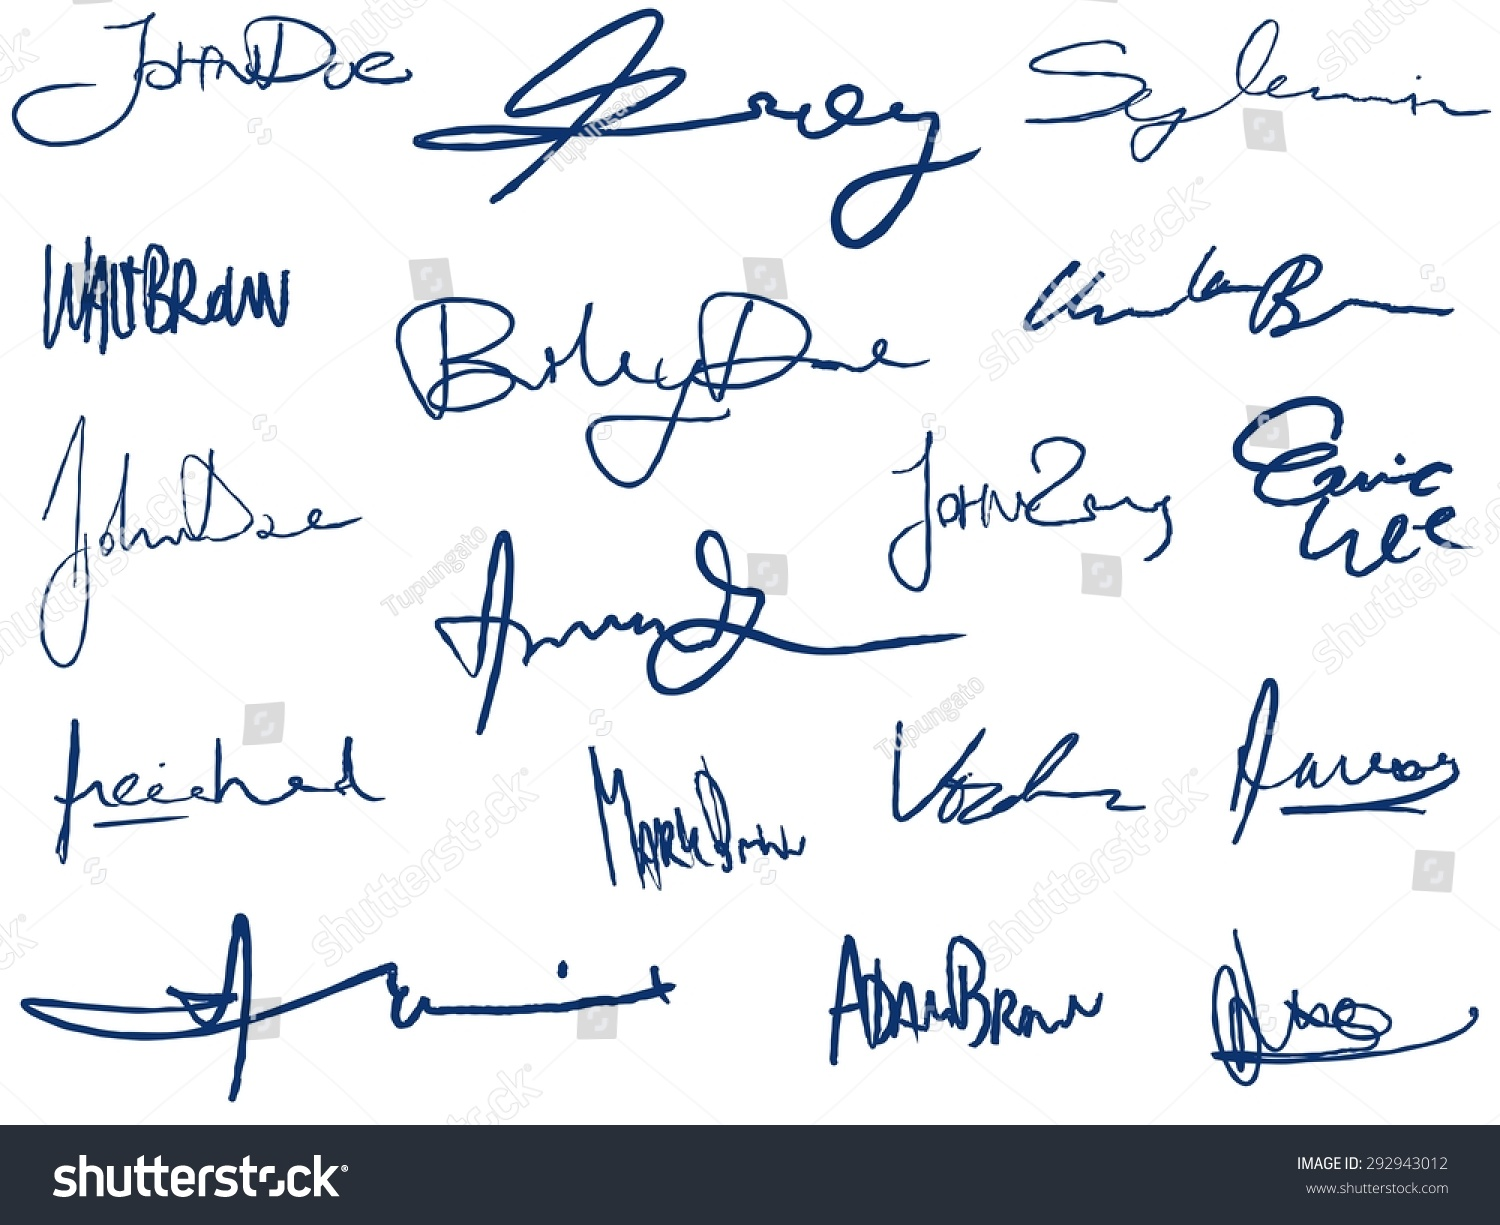 stock-vector-collection-of-handwritten-signatures-personal-contract-fictitious-signature-set-292943012.jpg